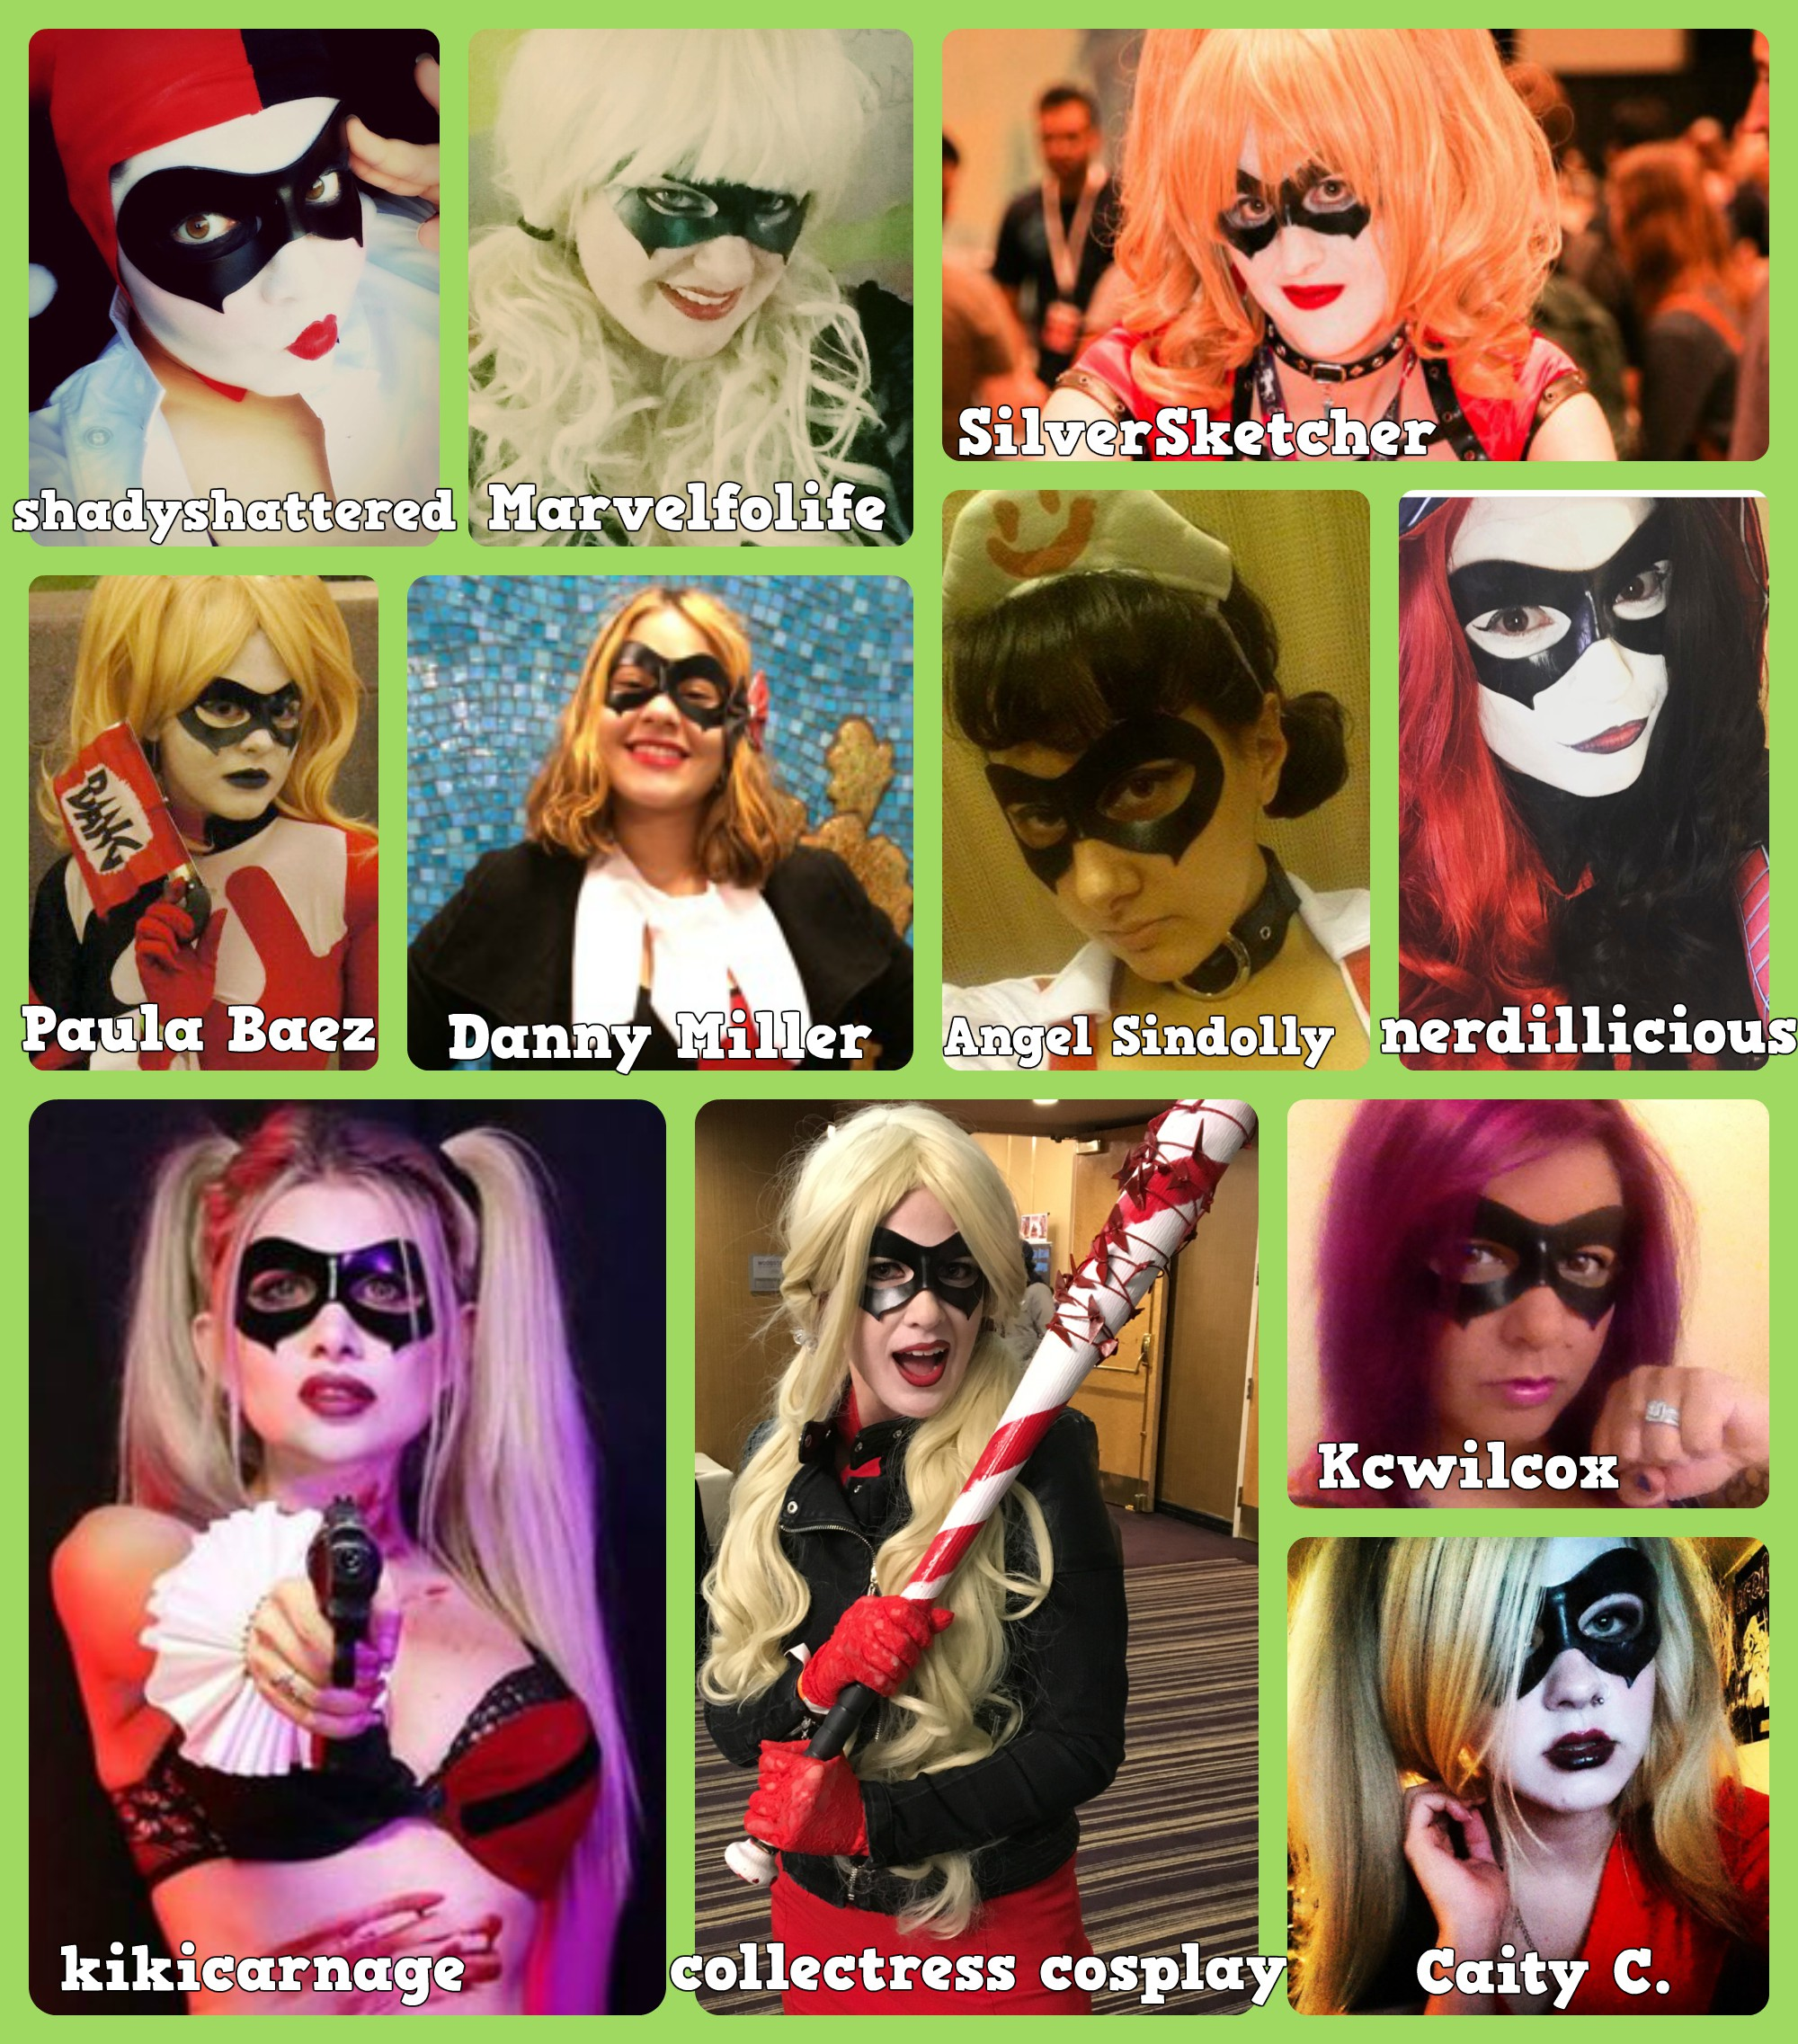 harley-quinn-injustice-mask-collage.jpg